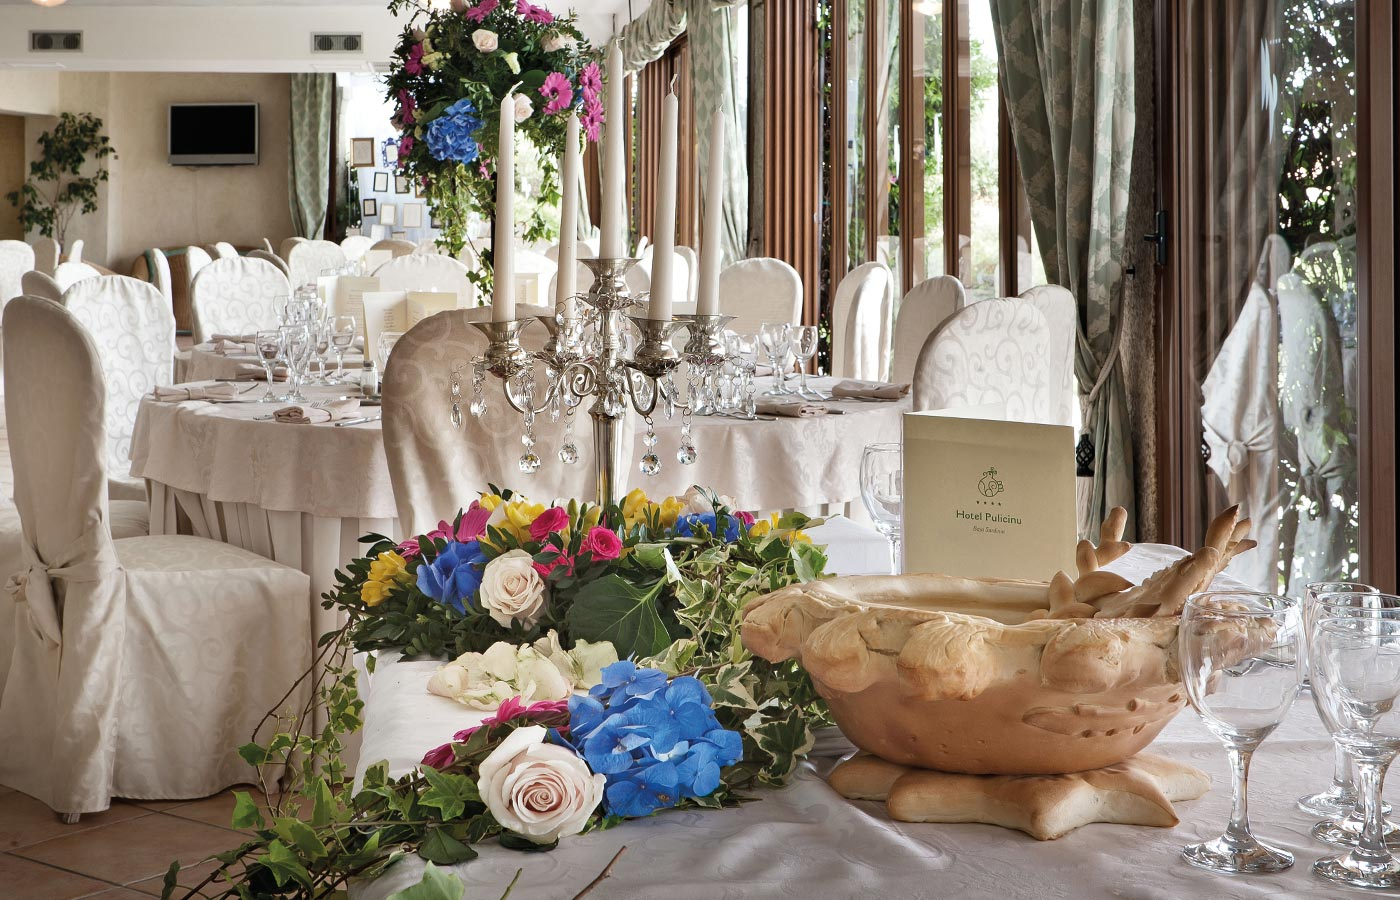 Your wedding in Sardinia at Hotel Pulicinu